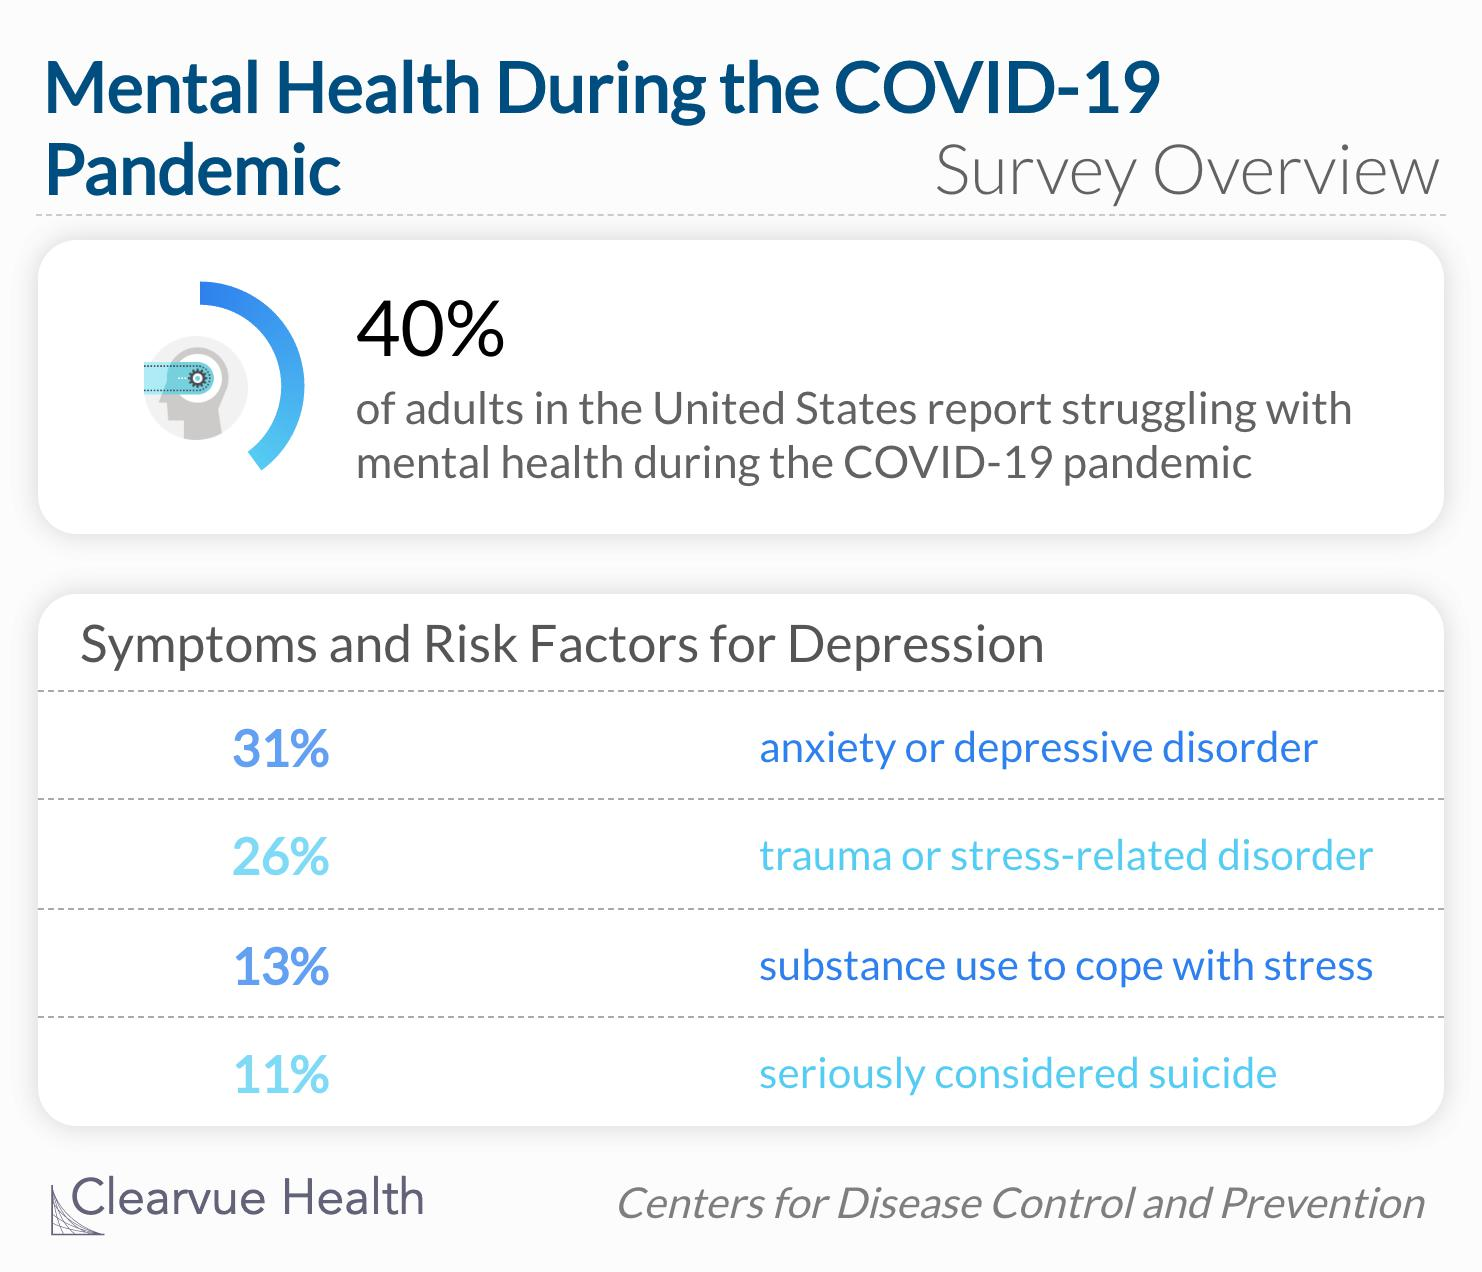 U.S. adults reported considerably elevated adverse mental health conditions associated with COVID-19.